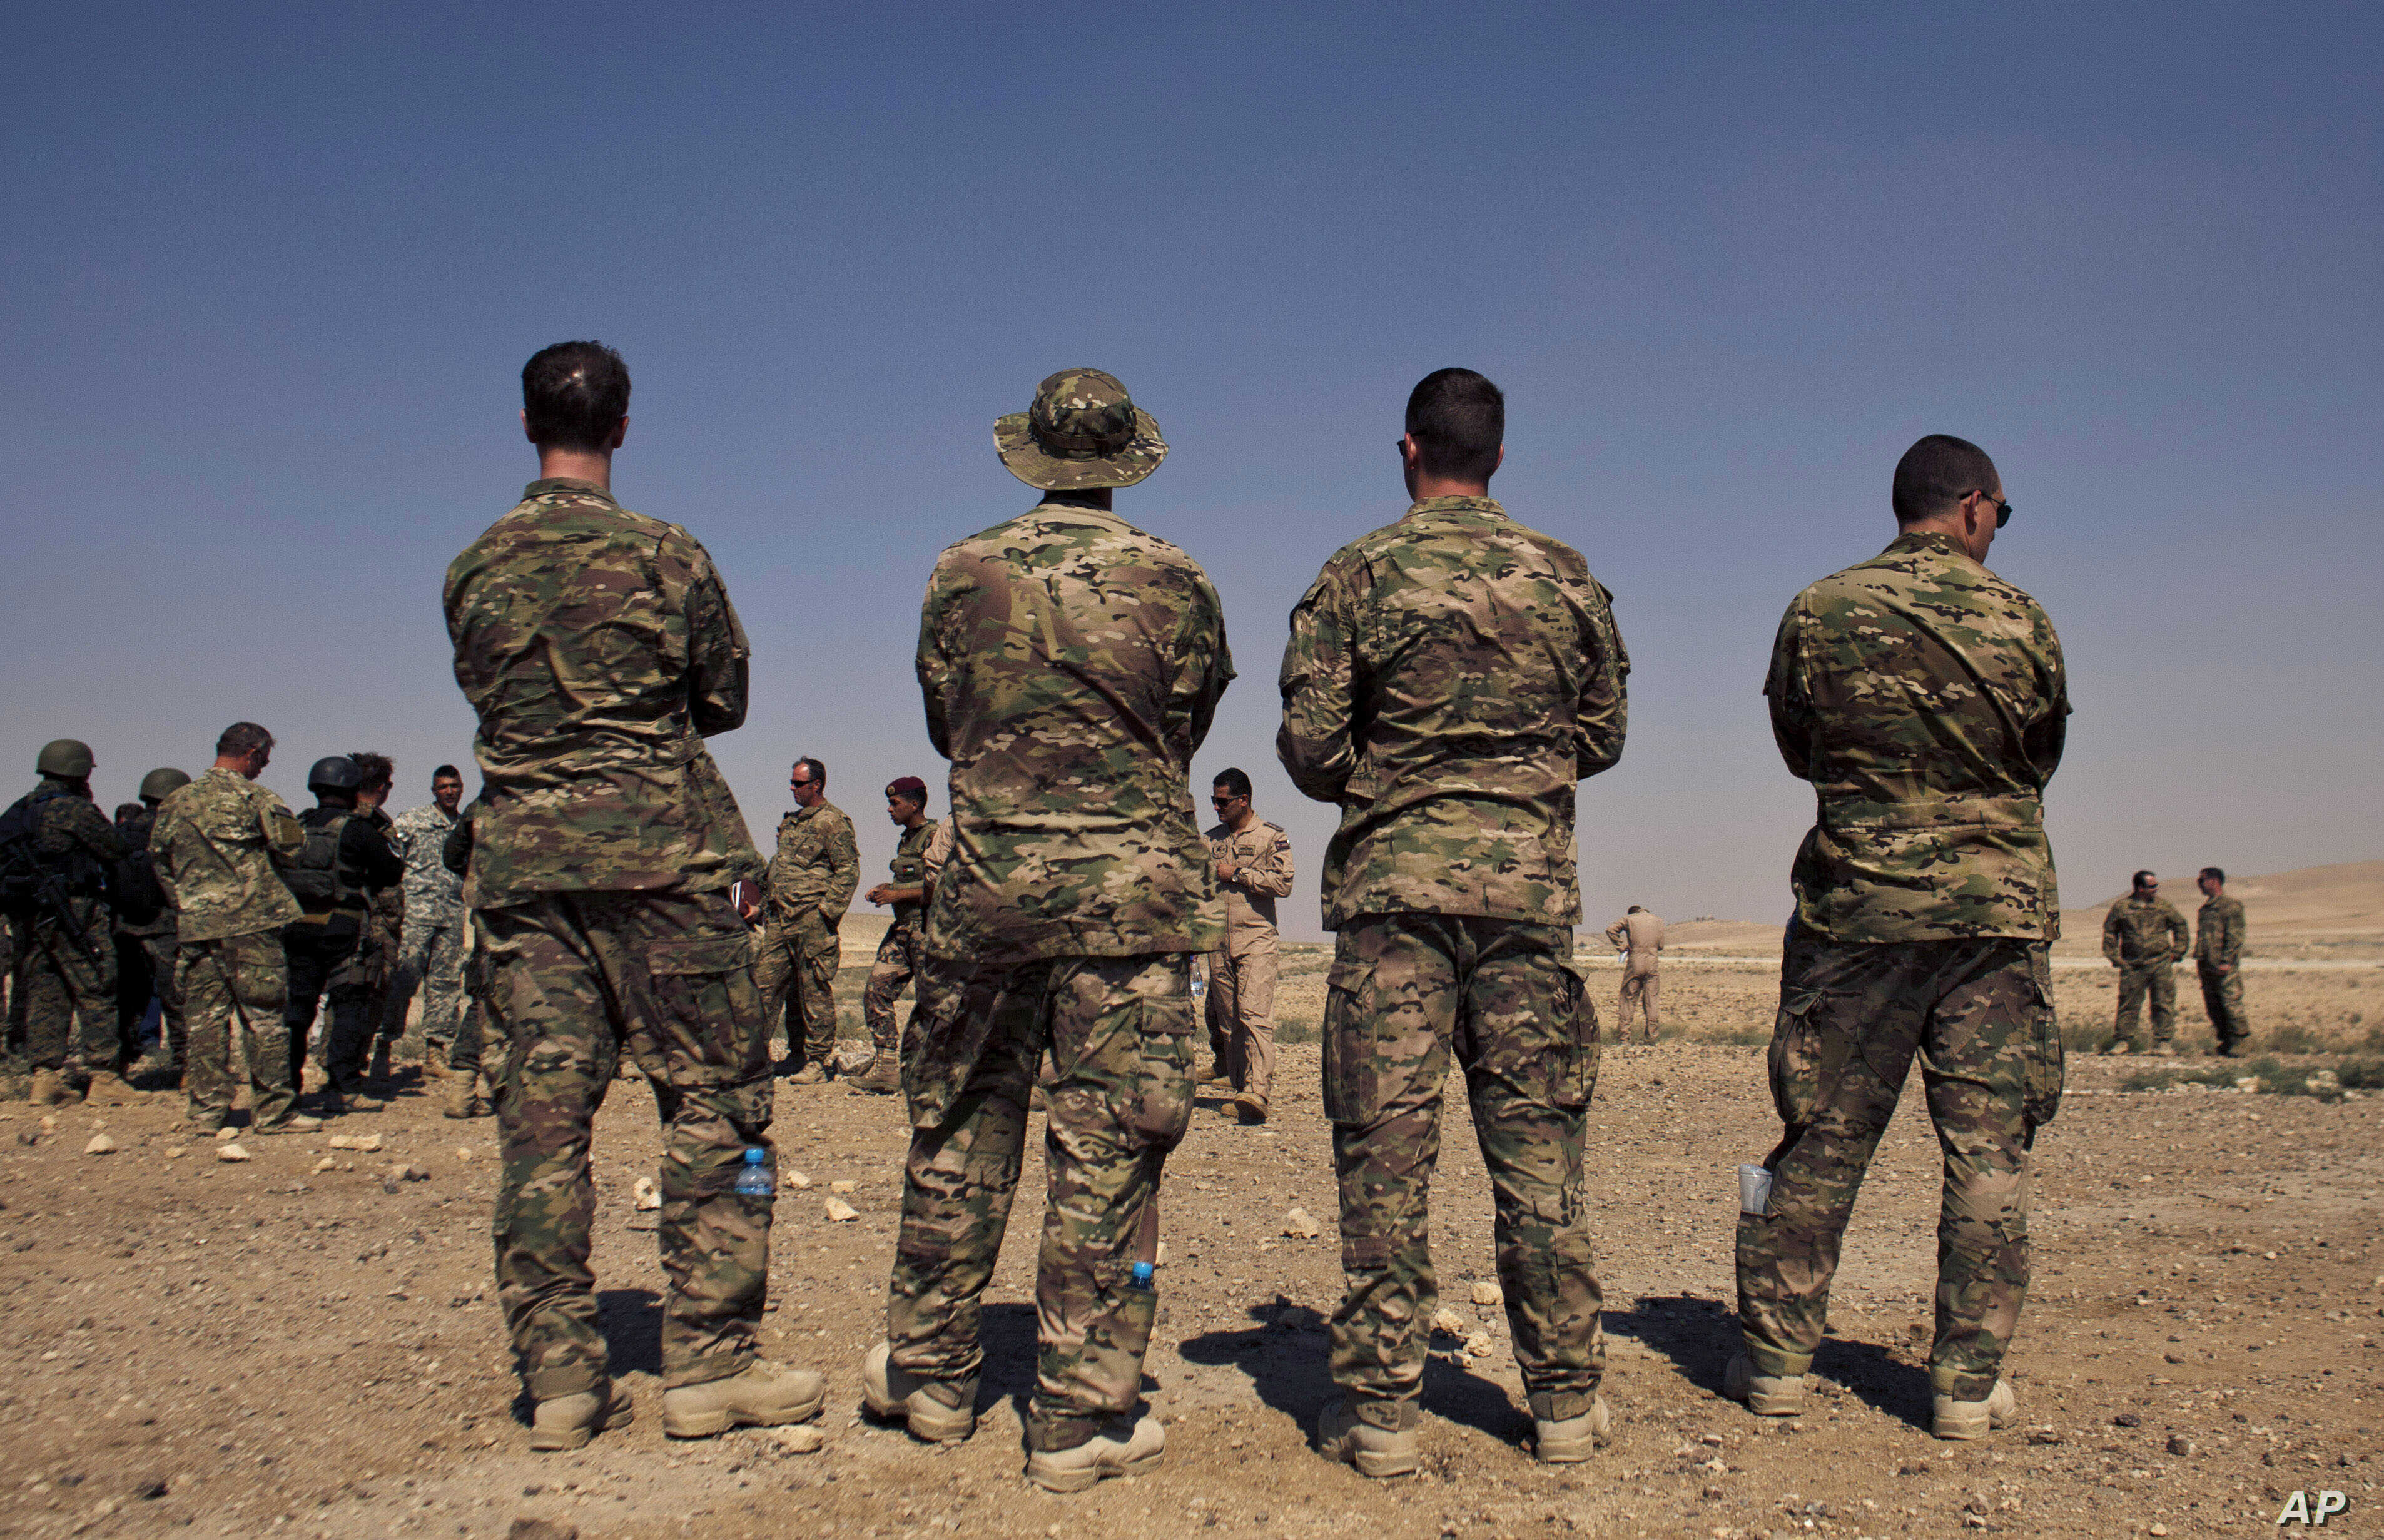 FILE - In this 2013 photo, US special operations forces watch forces from Iraq, Jordan, and Lebanon during a multinational military exercise in Zarqa, Jordan. The government-owned Al-Rai newspaper said Monday a Jordanian policeman opened fire on Amer...